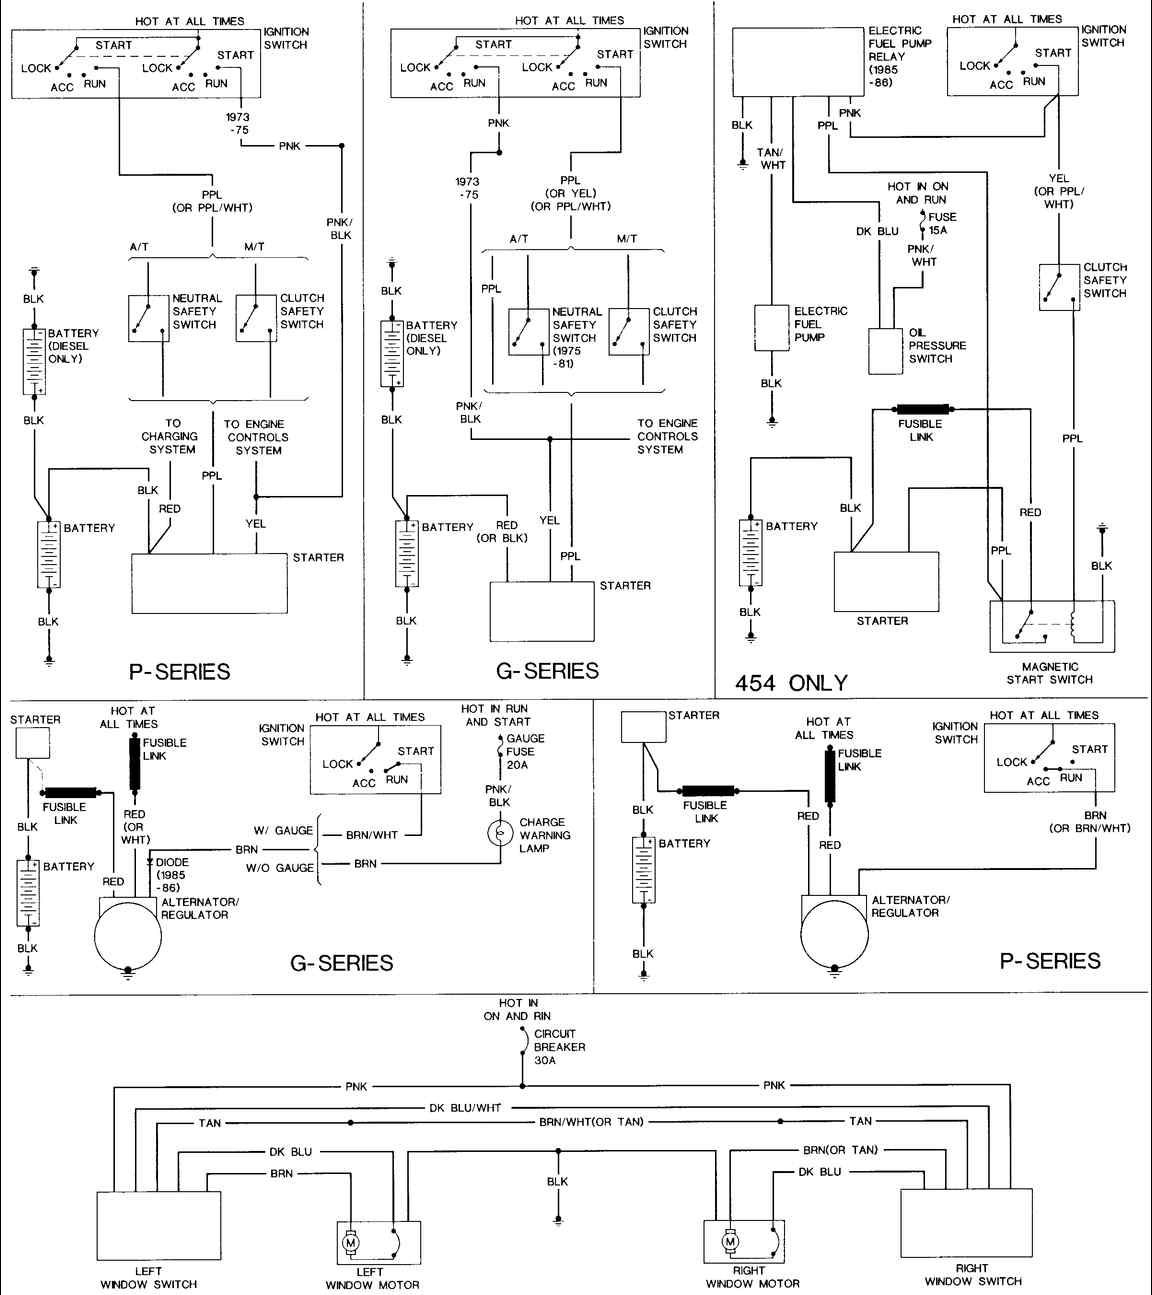 0c73623a181dc376dbb4777e2029d285 85 chevy truck wiring diagram 85 chevy van the steering column 85 chevy truck wiring harness at gsmx.co